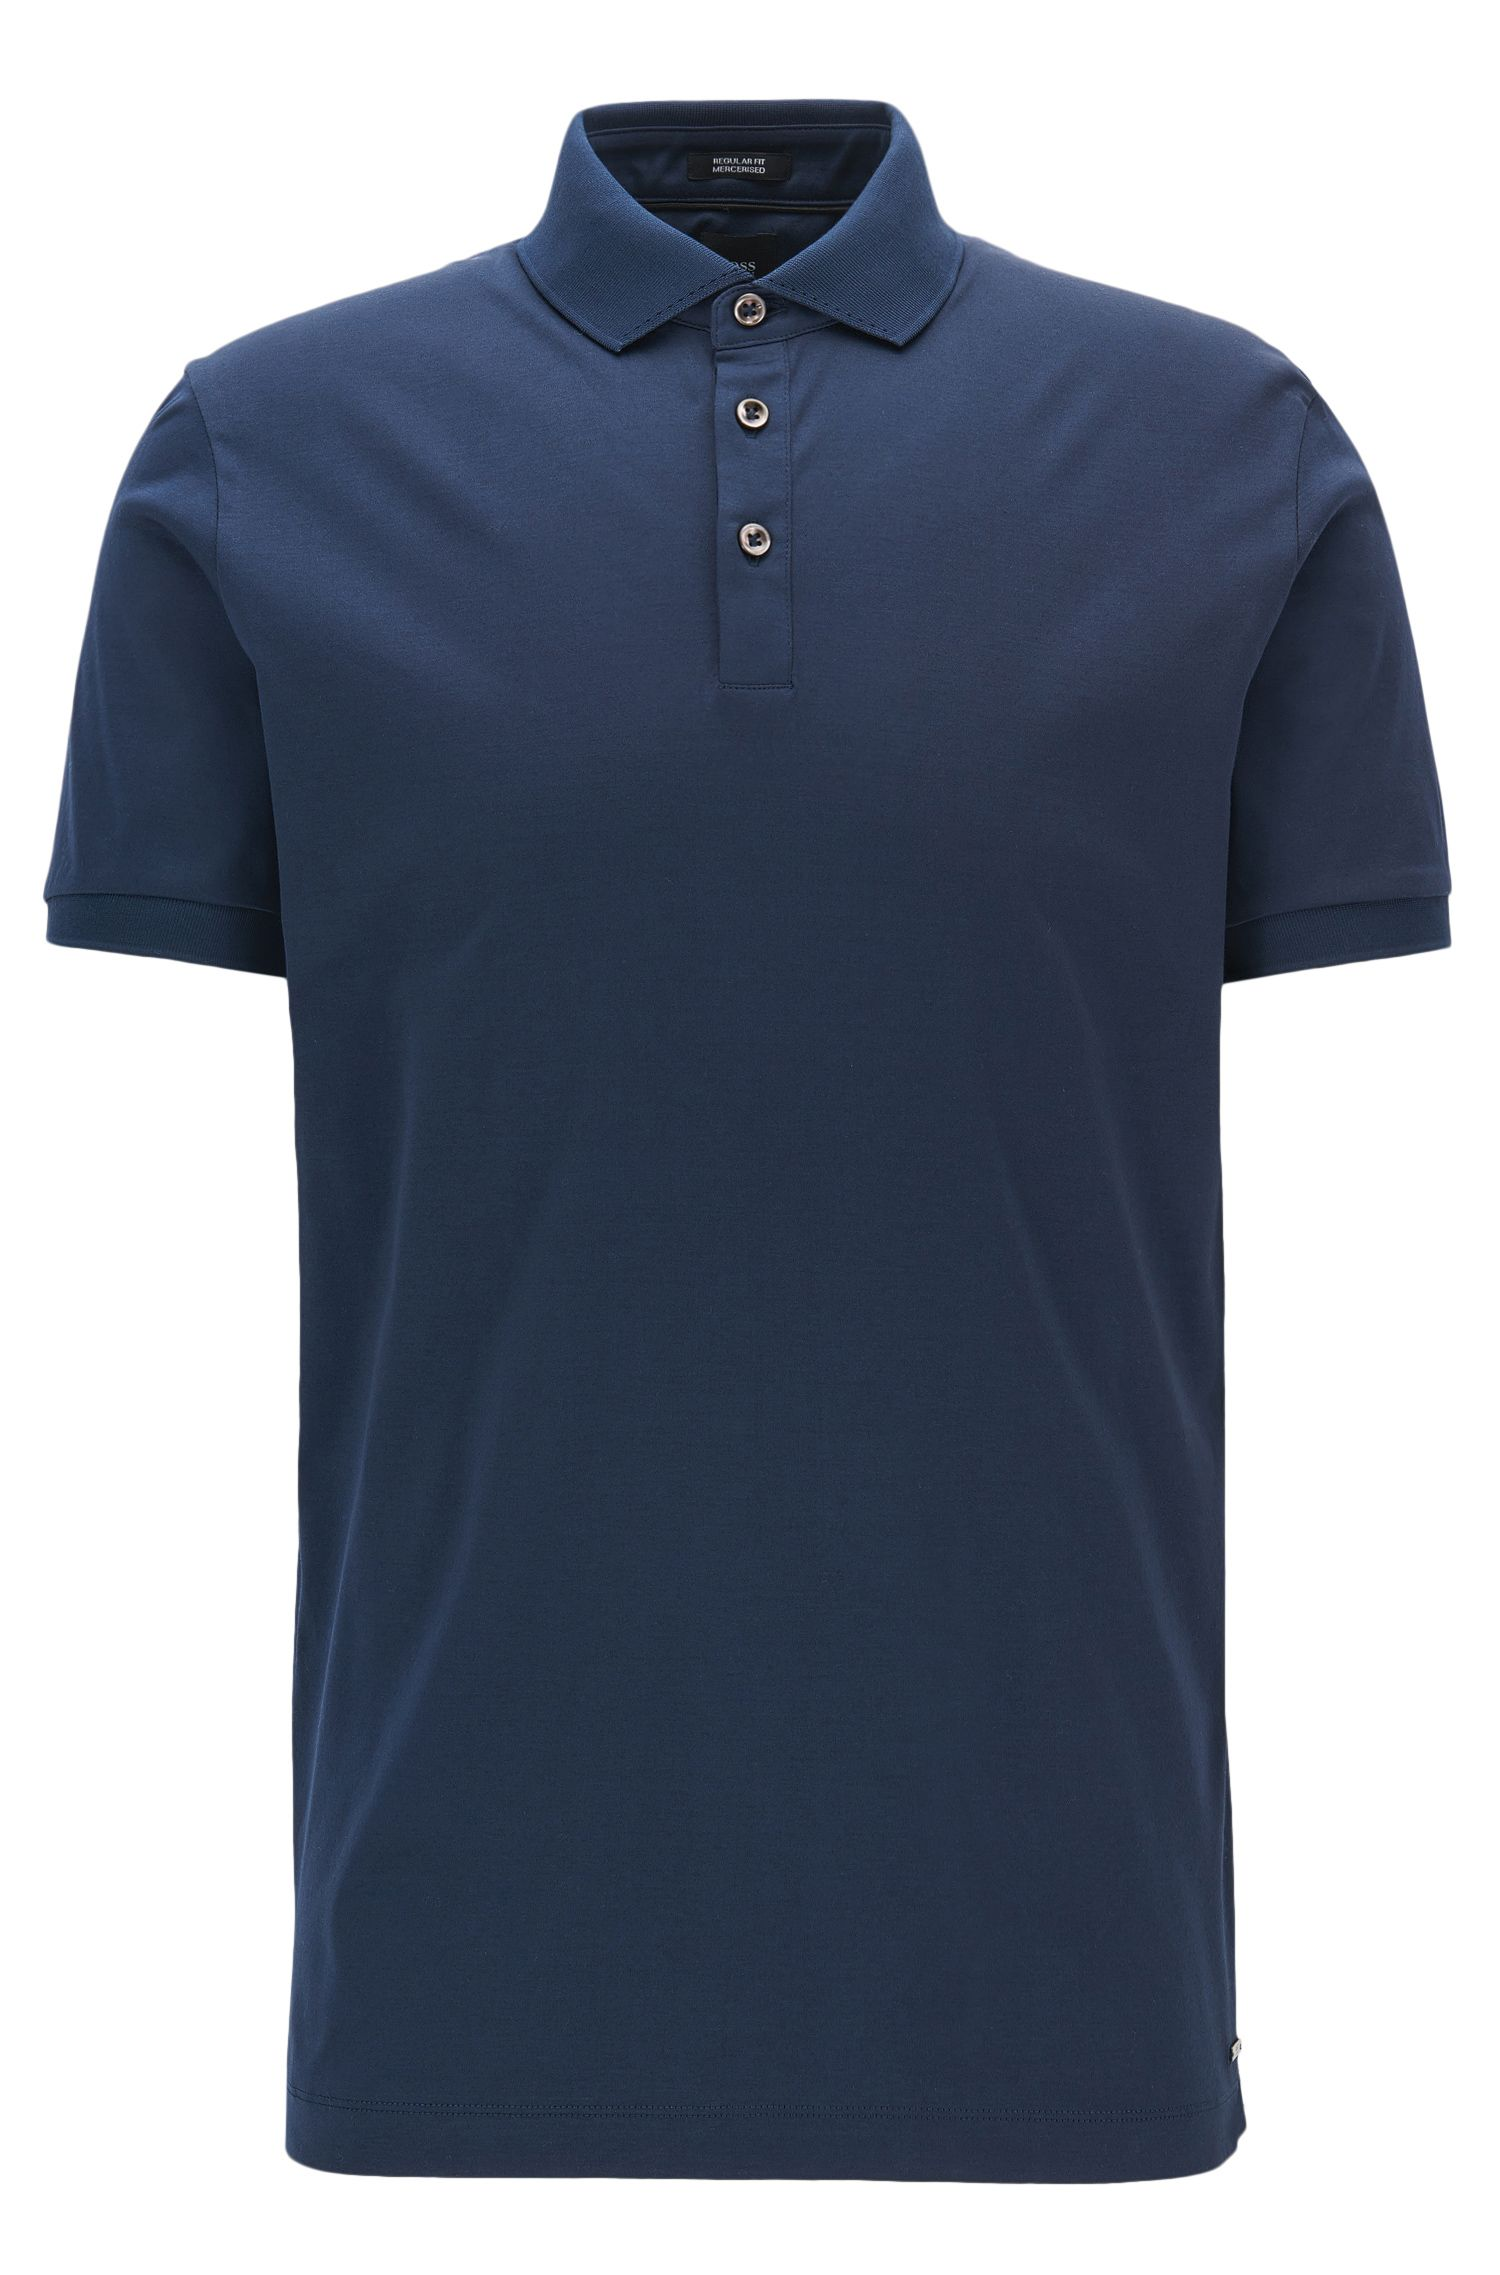 Polo regular fit en algodón interlock egipcio